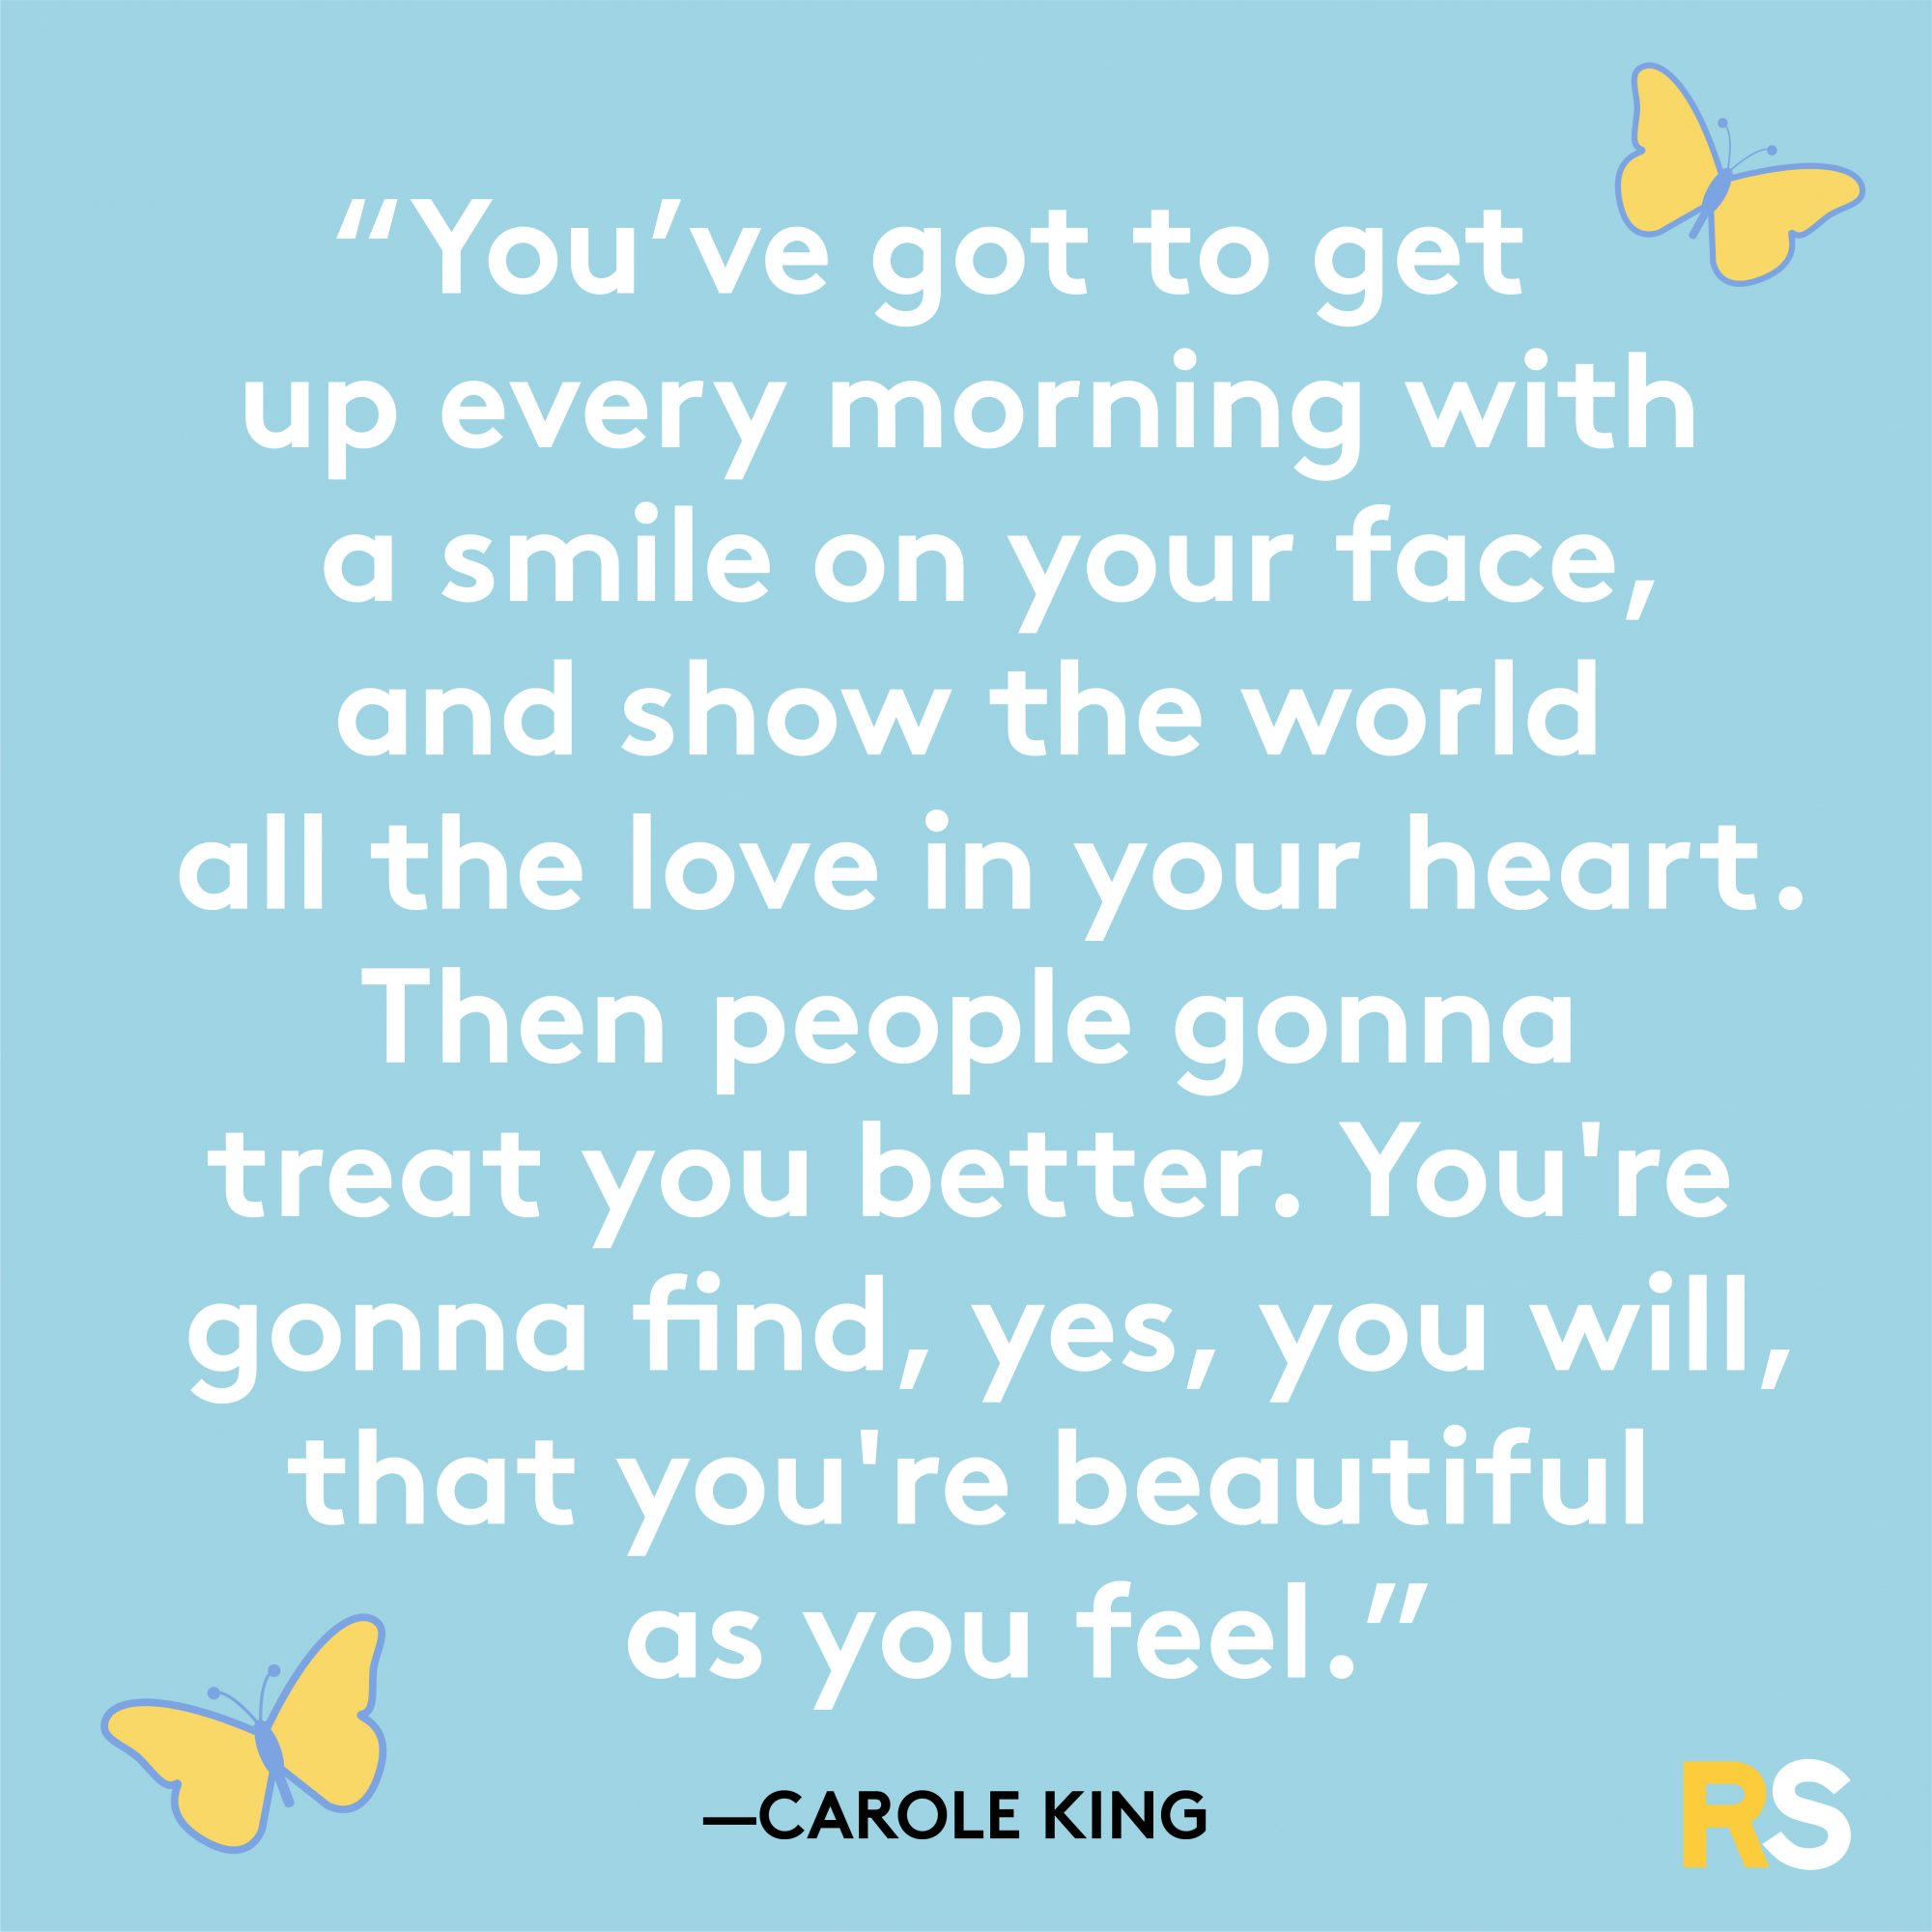 As Beautiful As You Feel Quote By Carole King